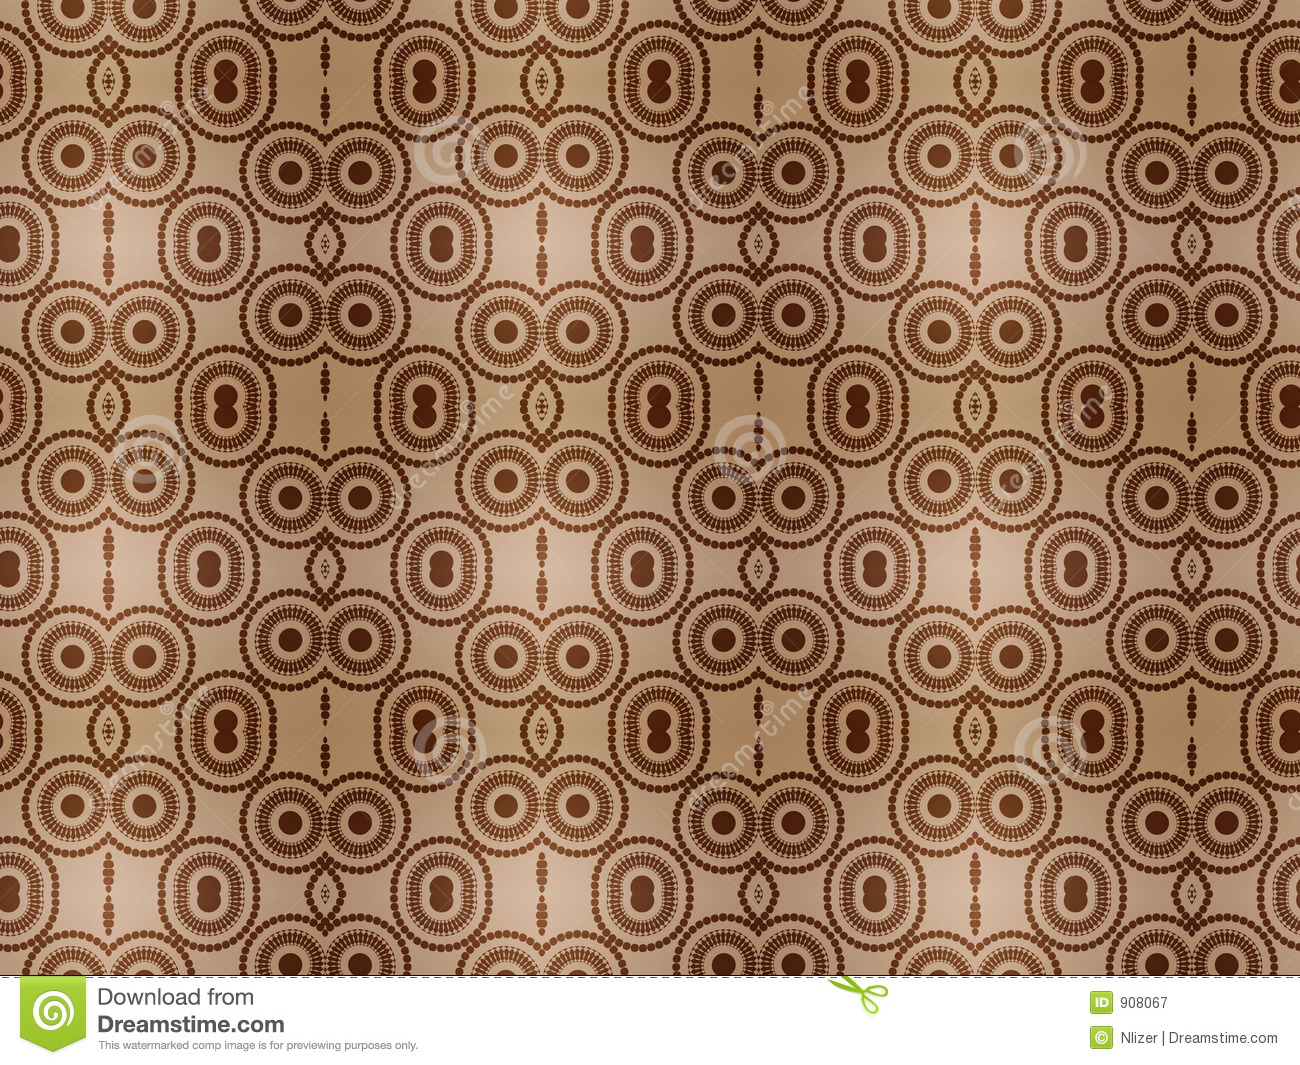 brown pattern wallpaper background royalty free stock photography image 908067. Black Bedroom Furniture Sets. Home Design Ideas